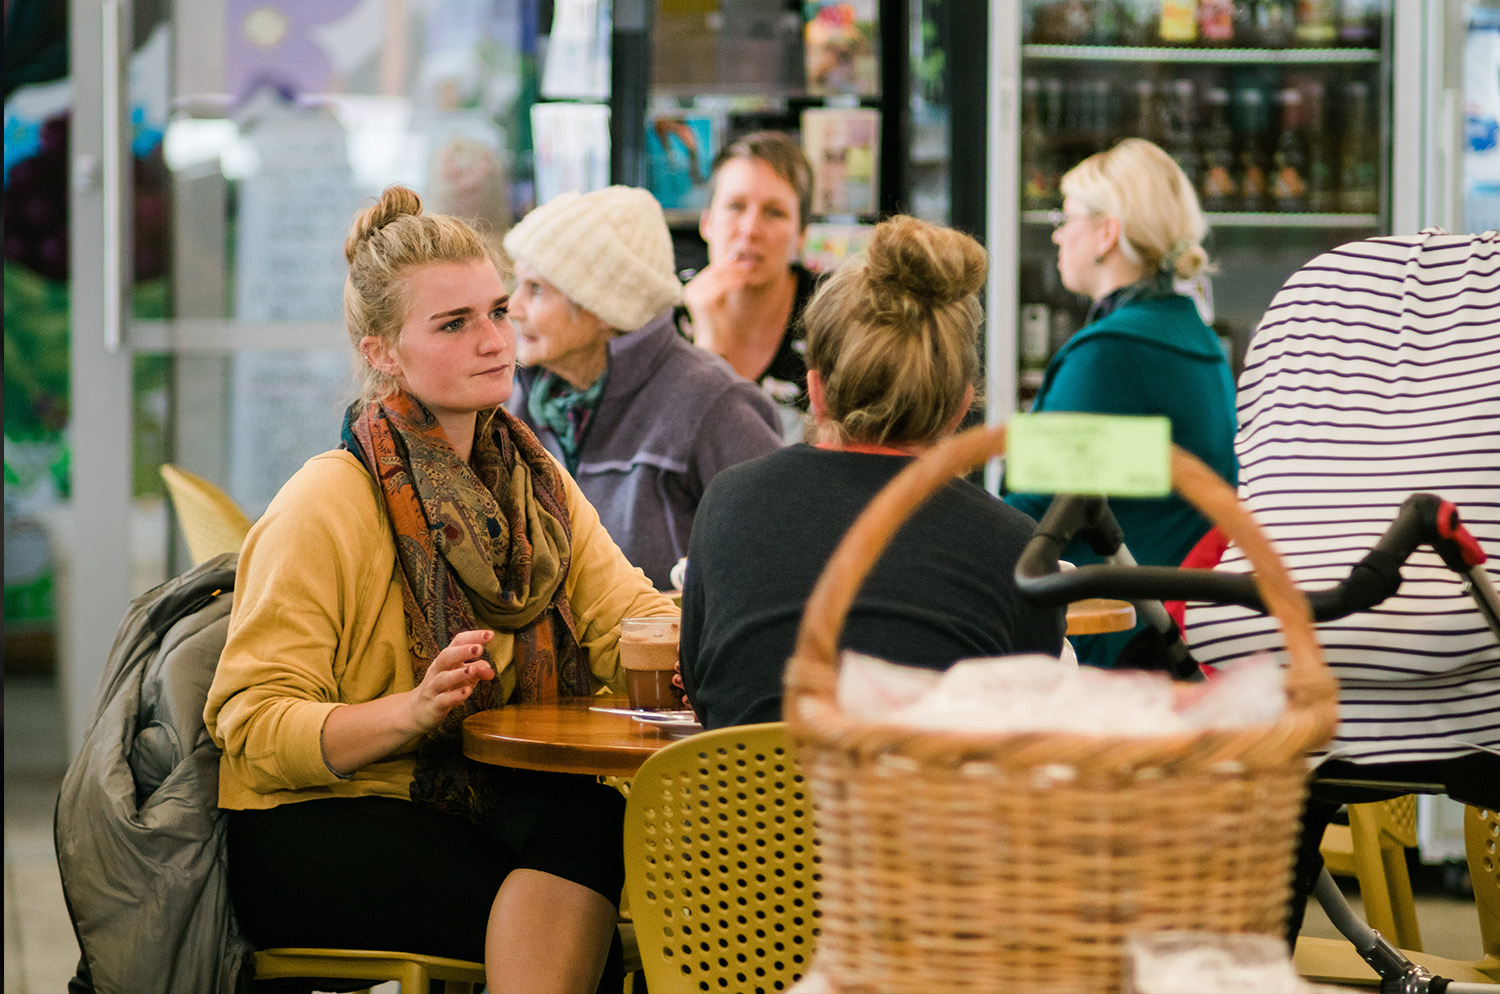 The-Pantry-Invercargill-wholefood-shop-cafe-events-meeting.jpg